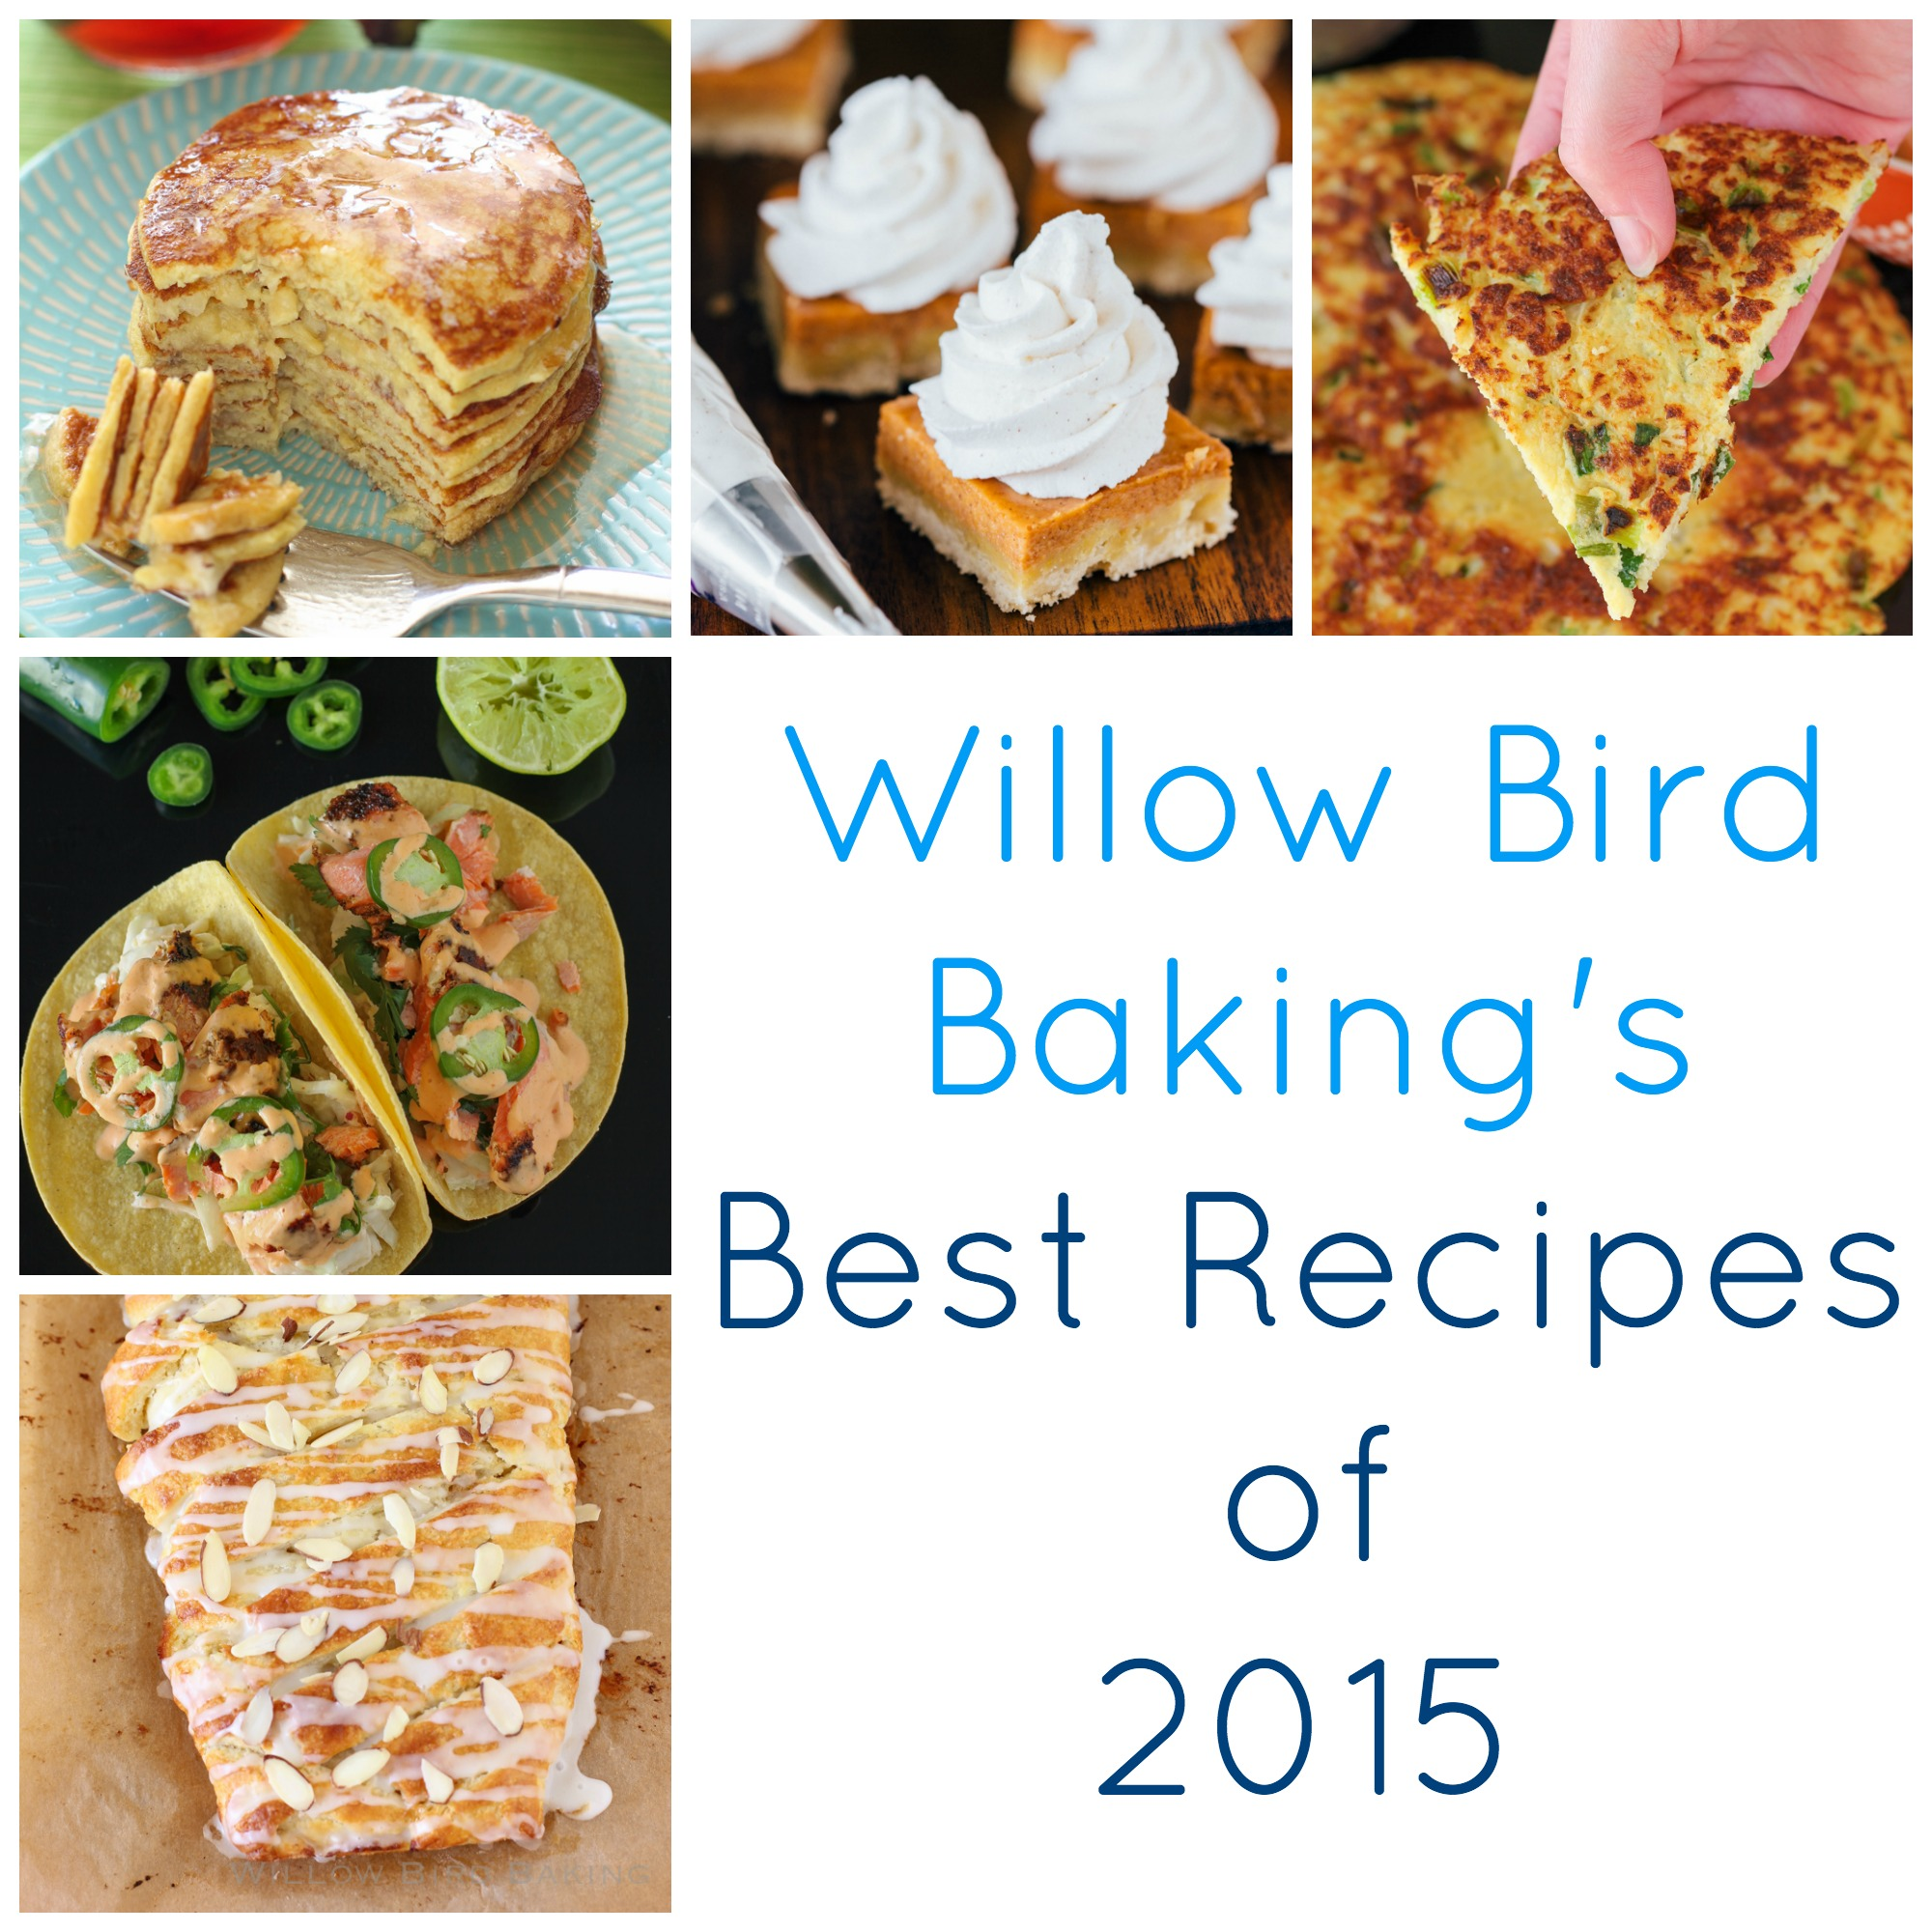 Willow Bird Baking's Best Recipes of 2015